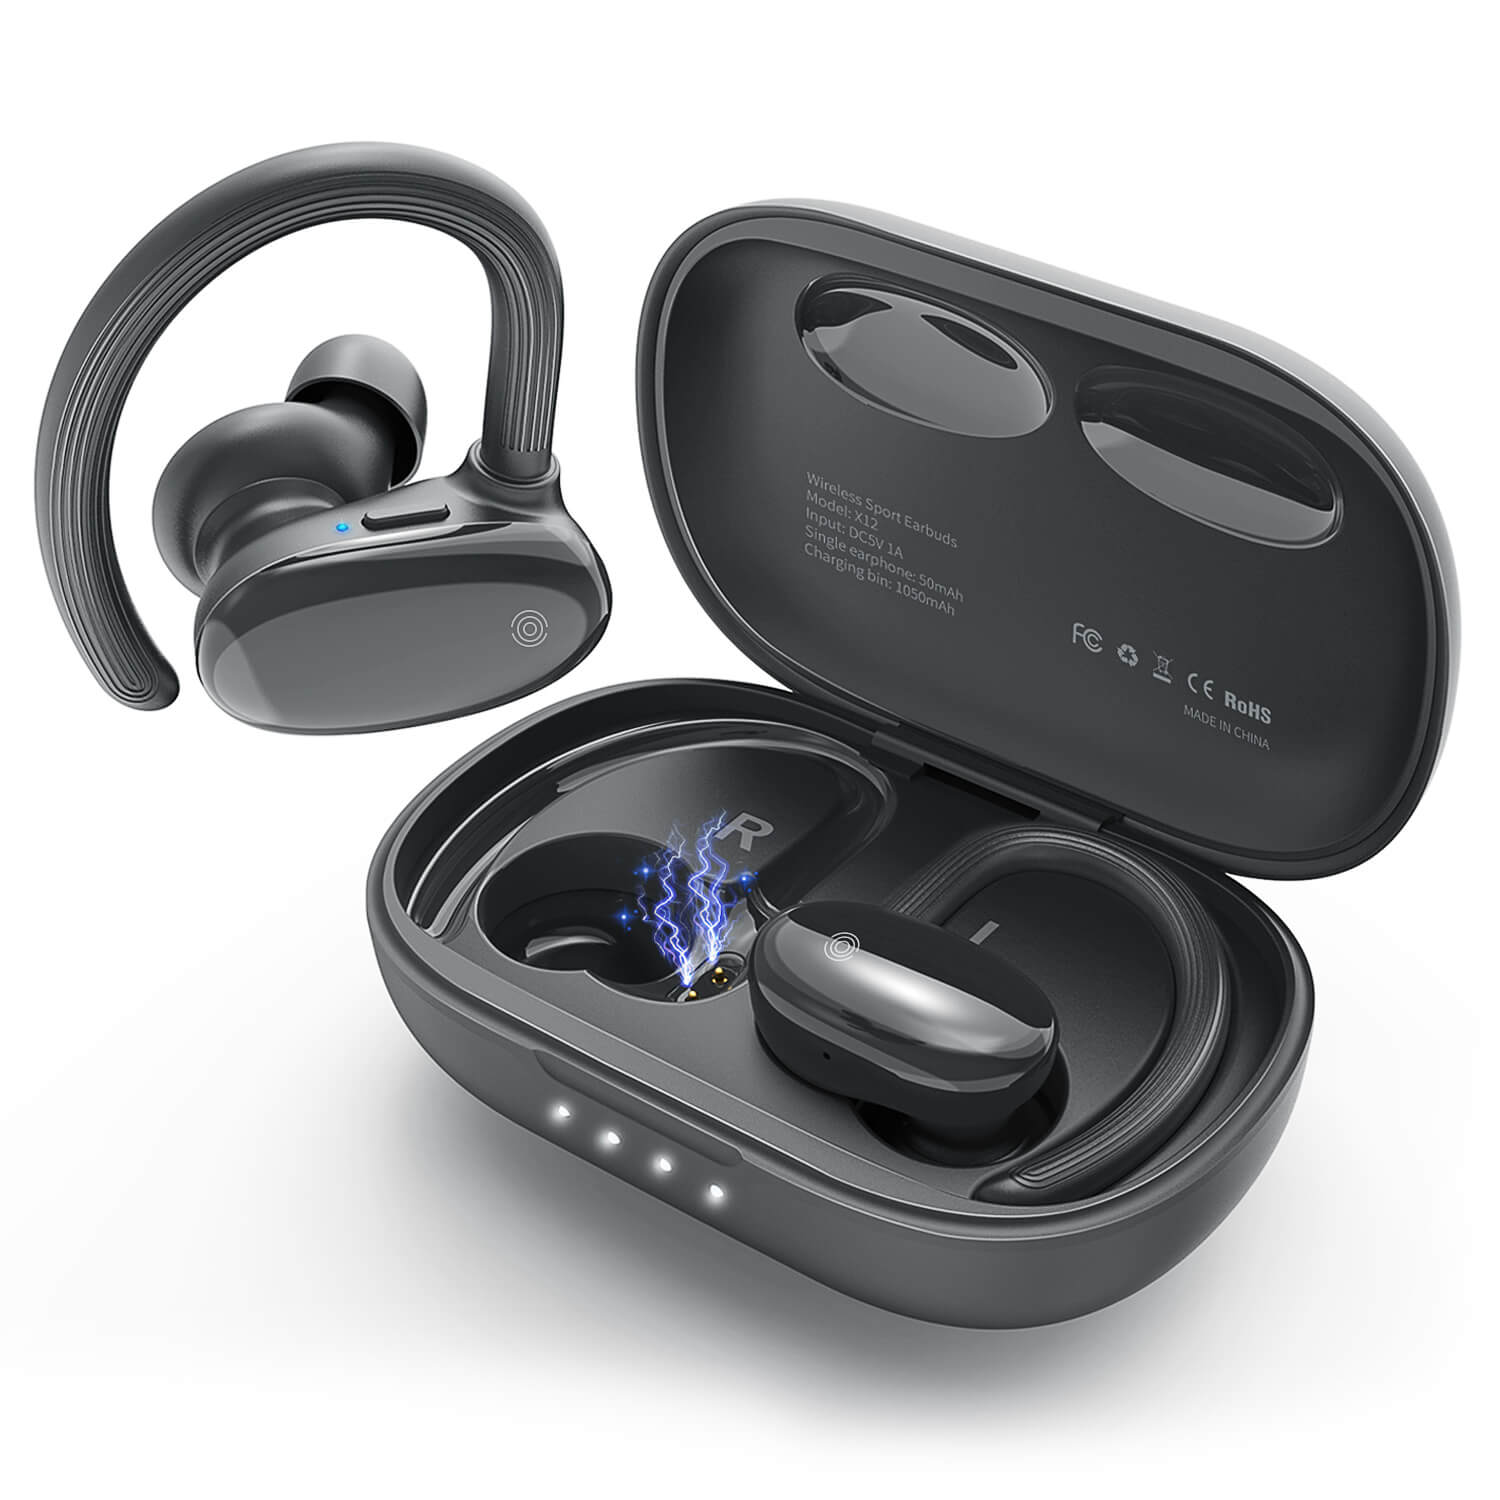 AOPOY TWS Wireless Earbuds Bluetooth 5.0 HiFi Headphones, Touch Control & Charging Case, IPX6, 60H, Black & Grey